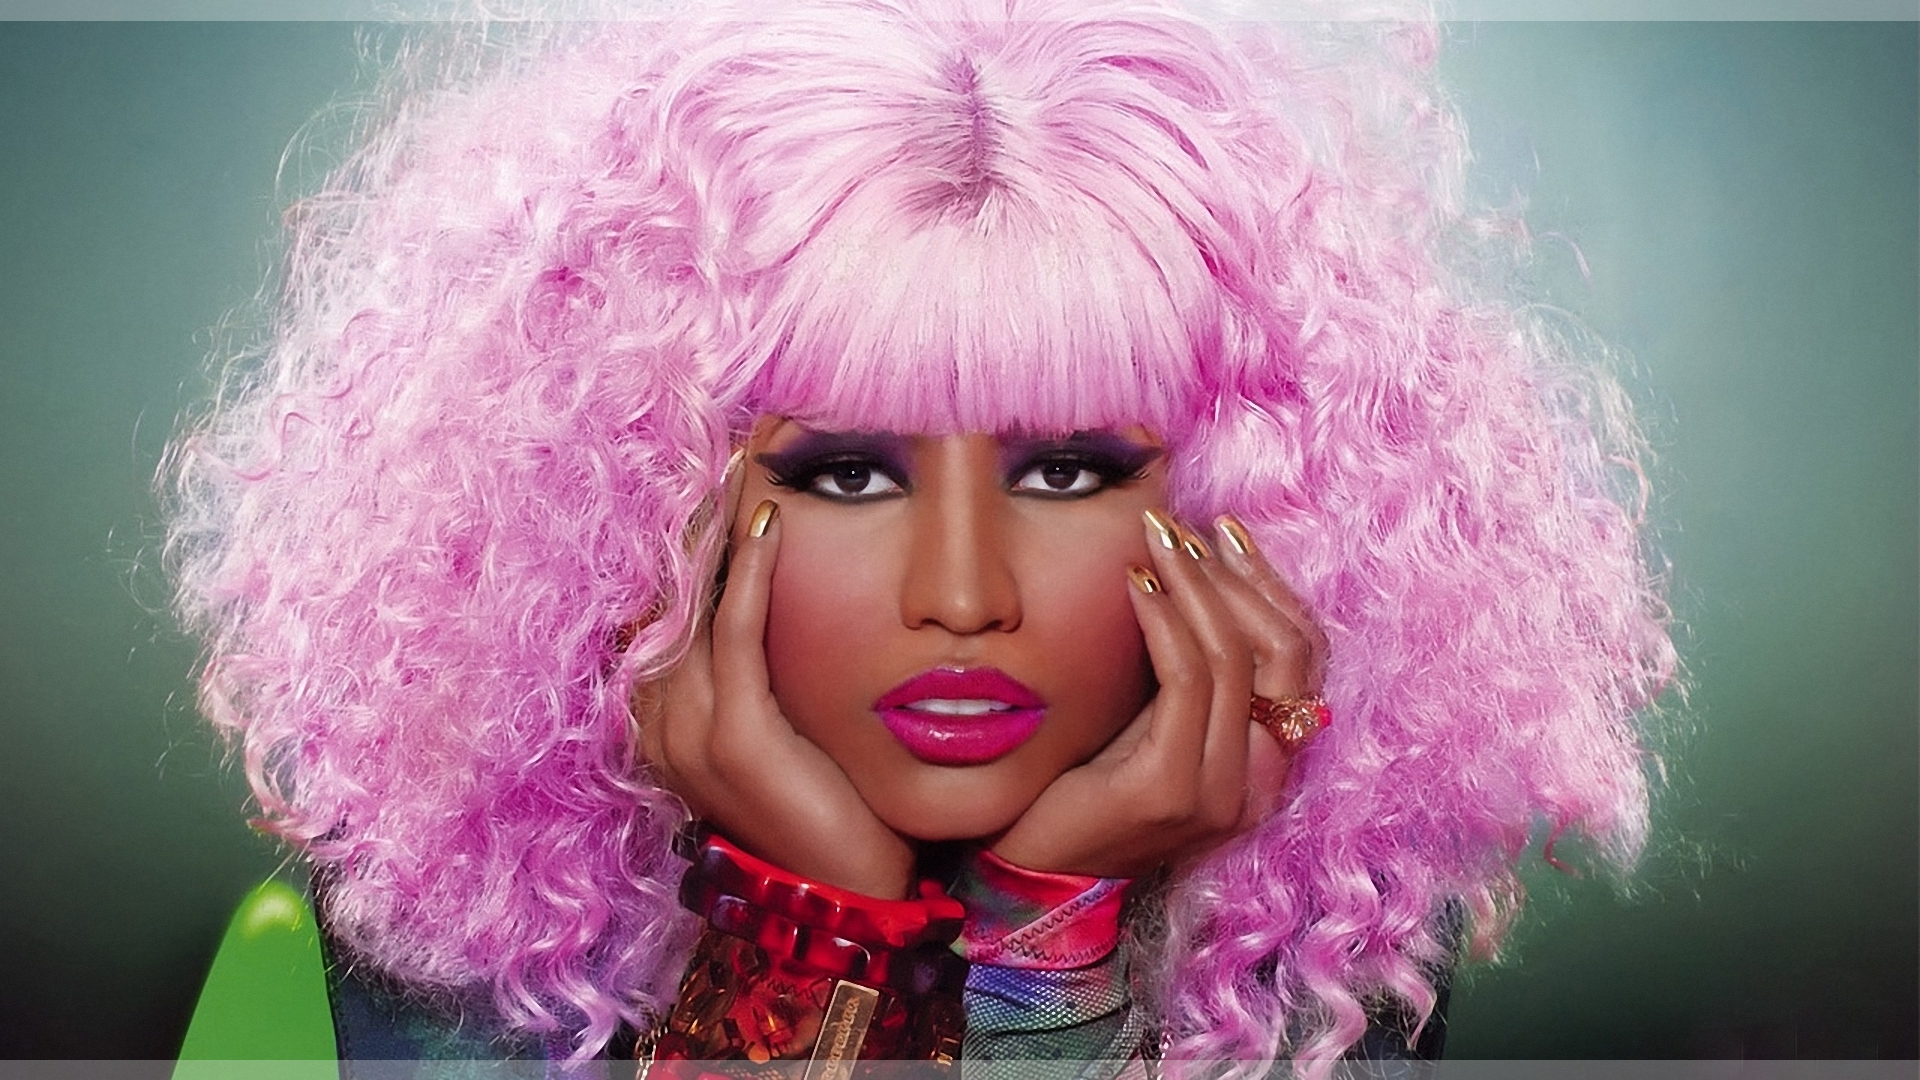 Nicki Minaj Desktop Wallpapers   Wallpaper High Definition High 1920x1080